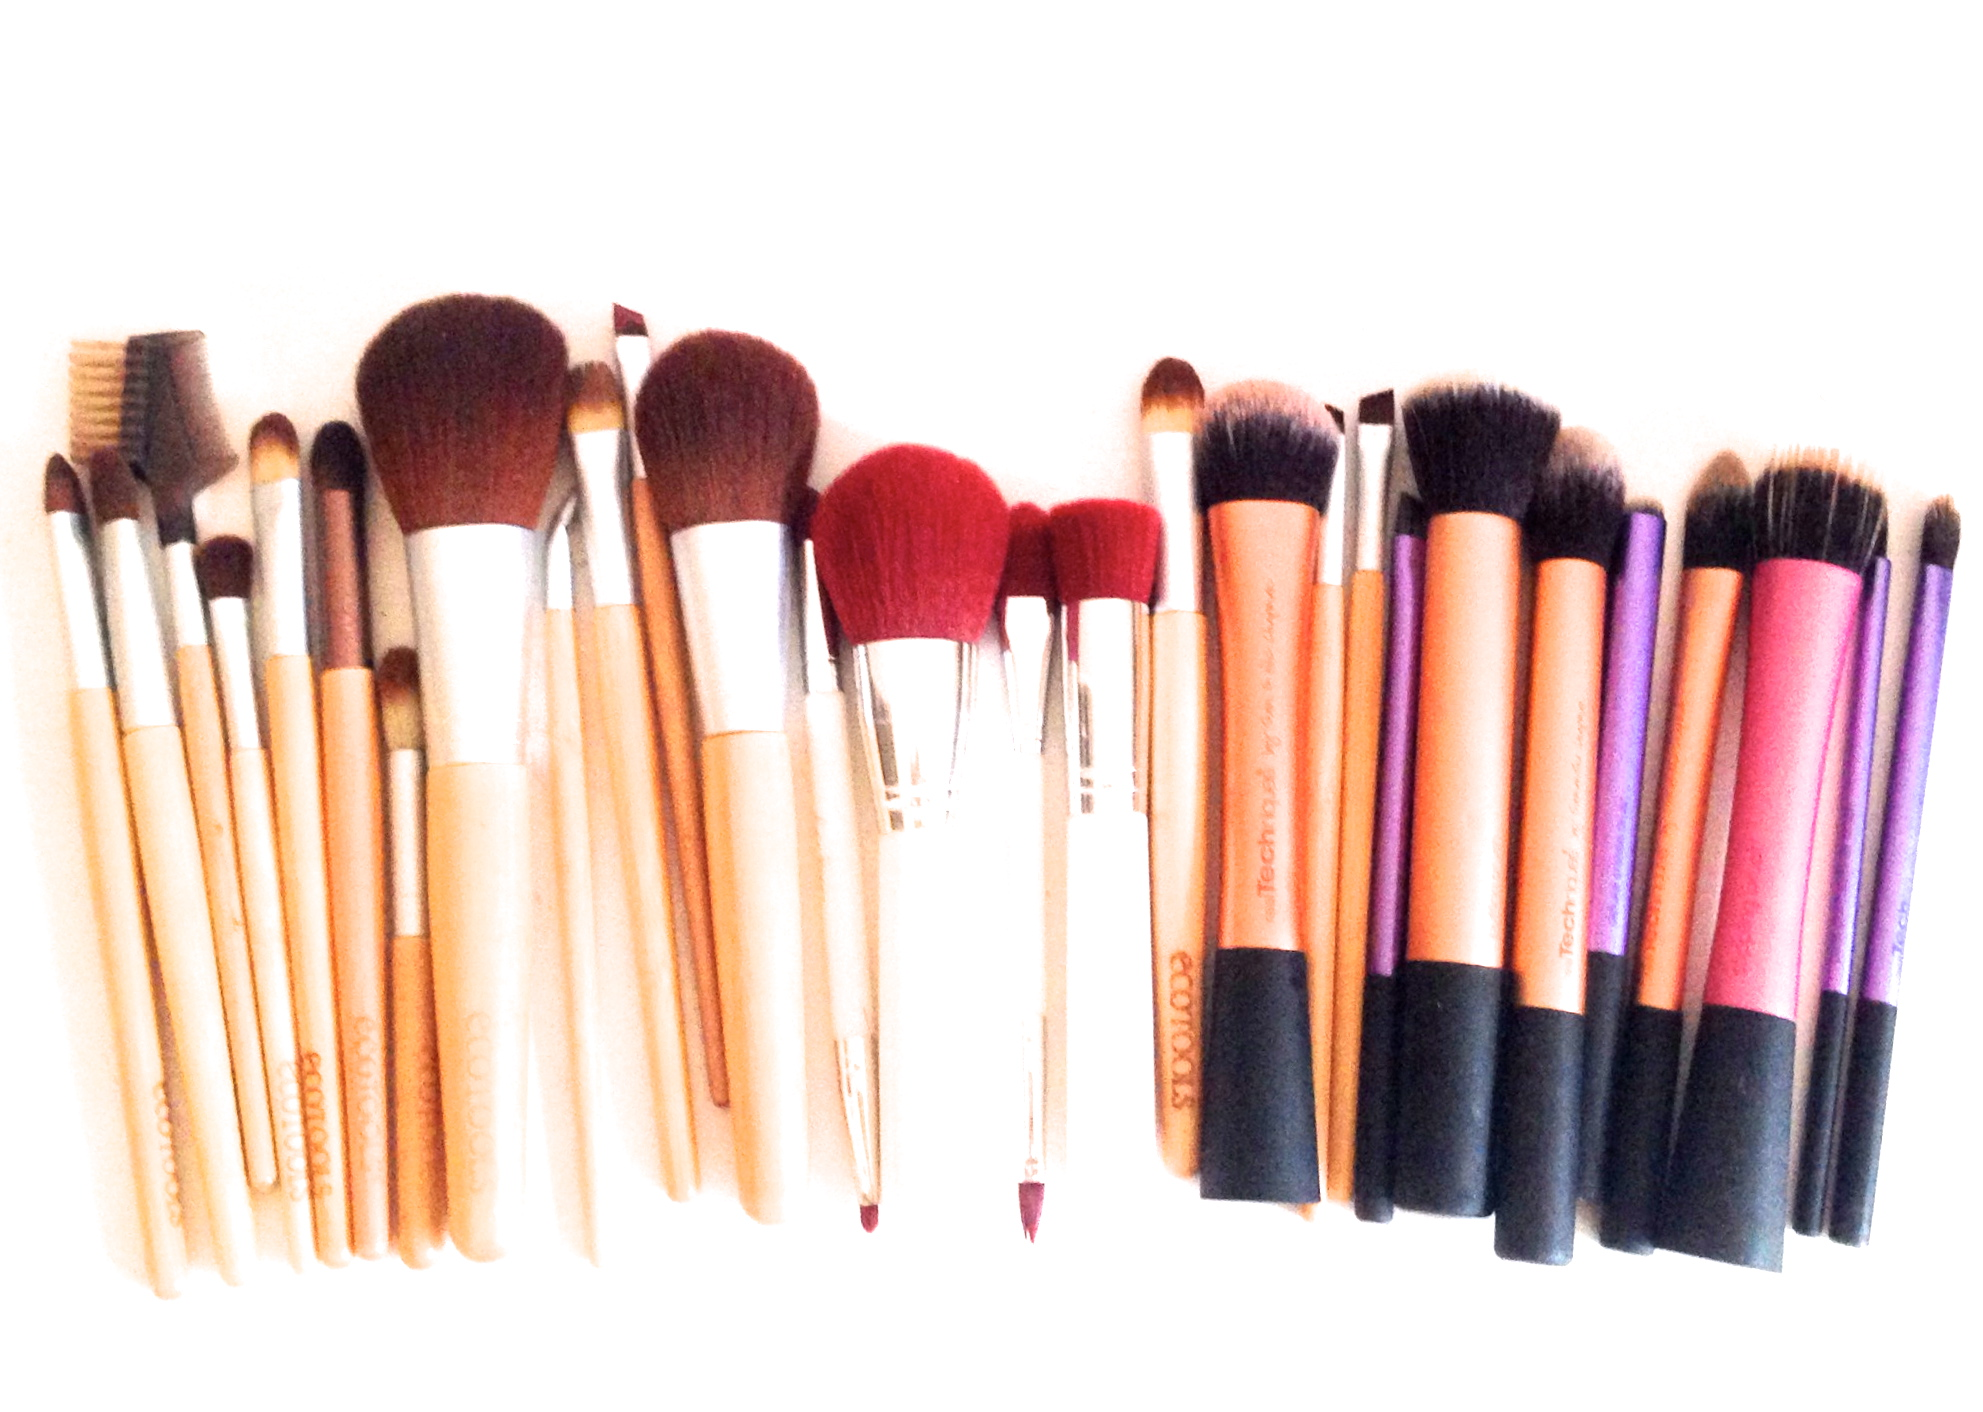 A few from my personal collection/brush kit..